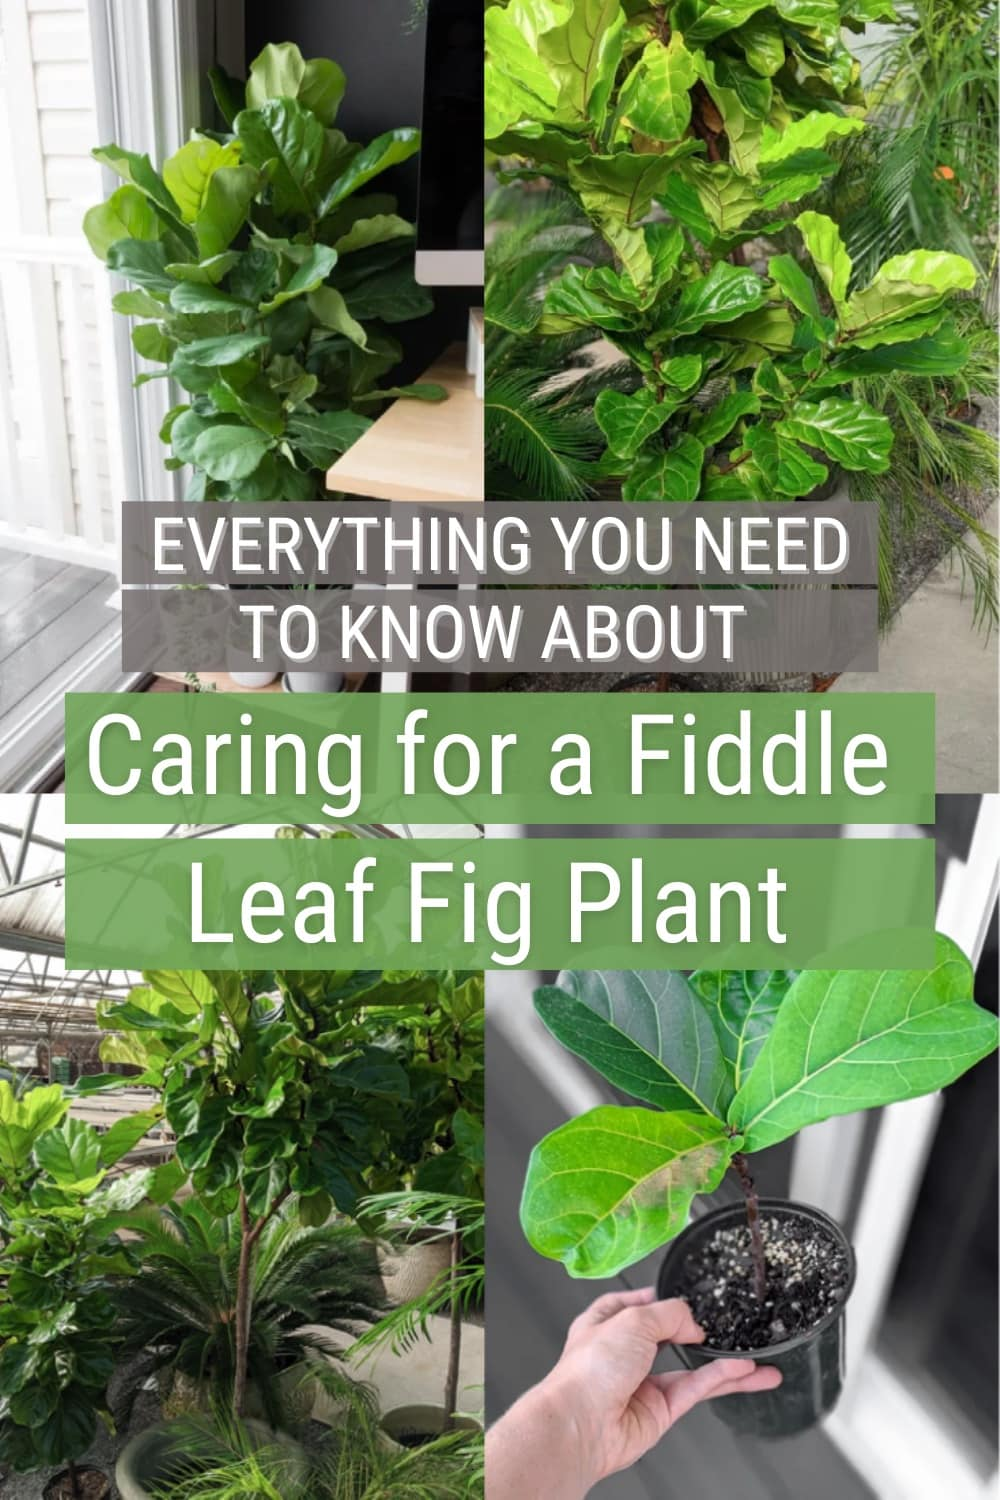 image collage of fiddle leaf fig plants with text Everyting you need to know about caring for a fiddle leaf fig plant